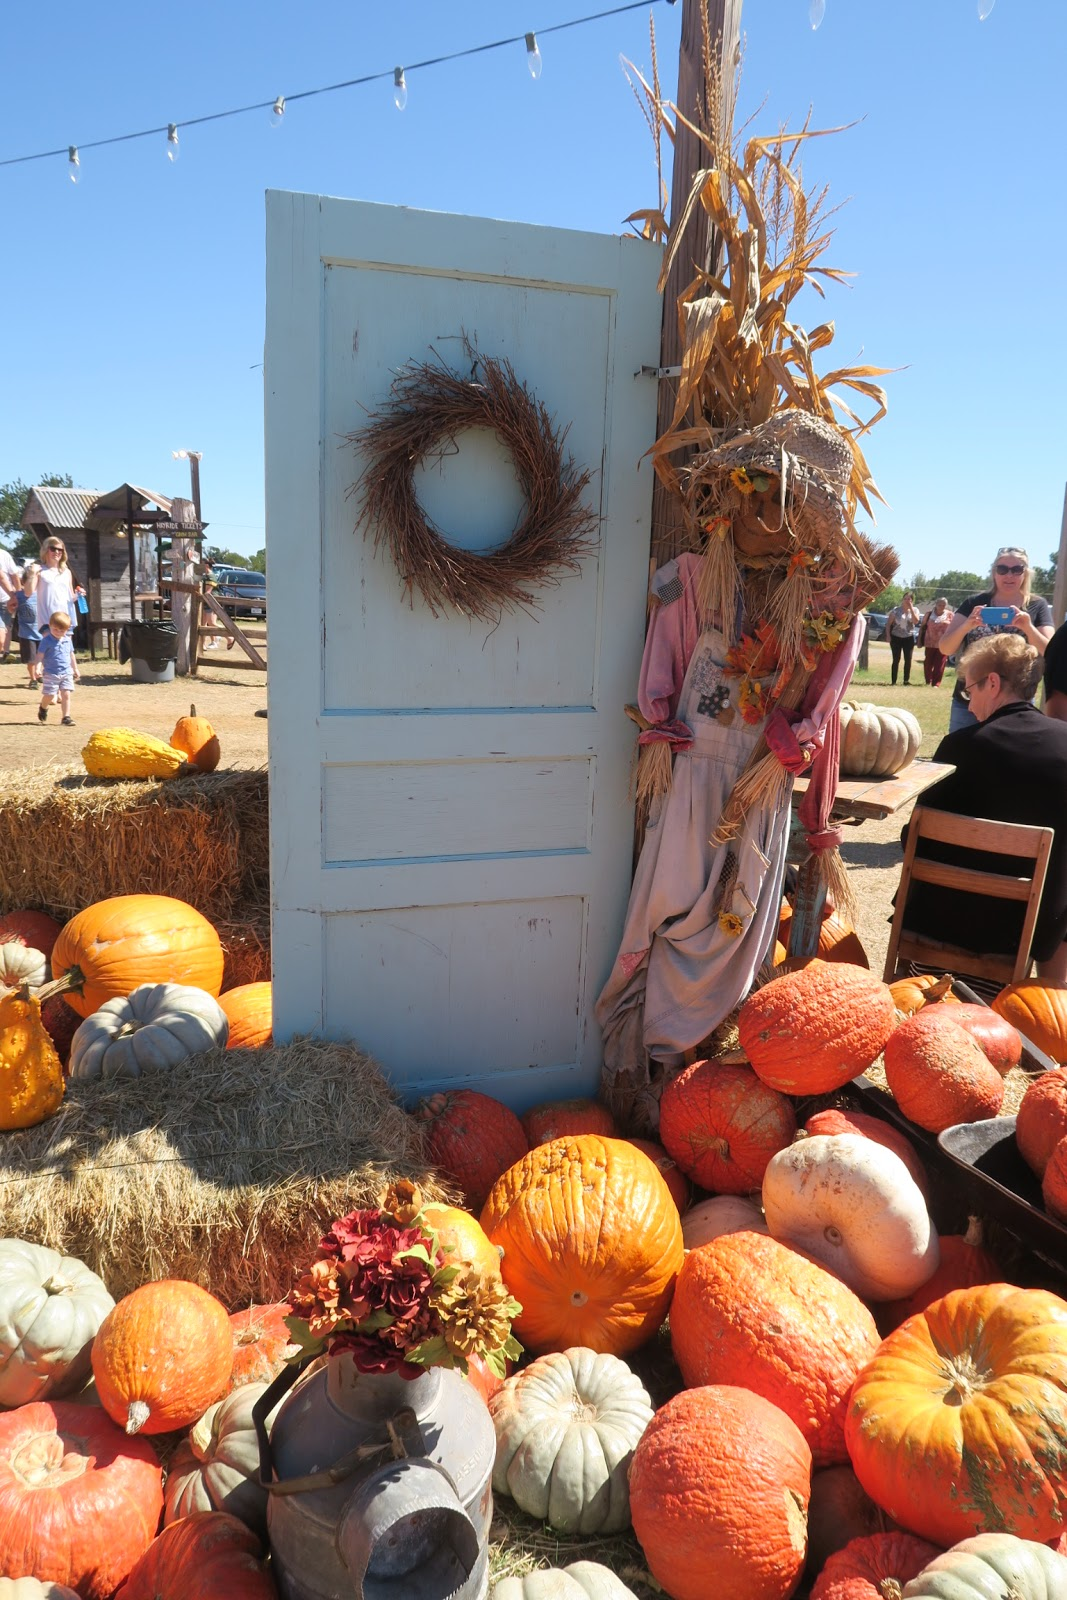 Image: Door surrounded by pumpkins at Hall's pumpkin patch. Blog post about family traditions and family dates.